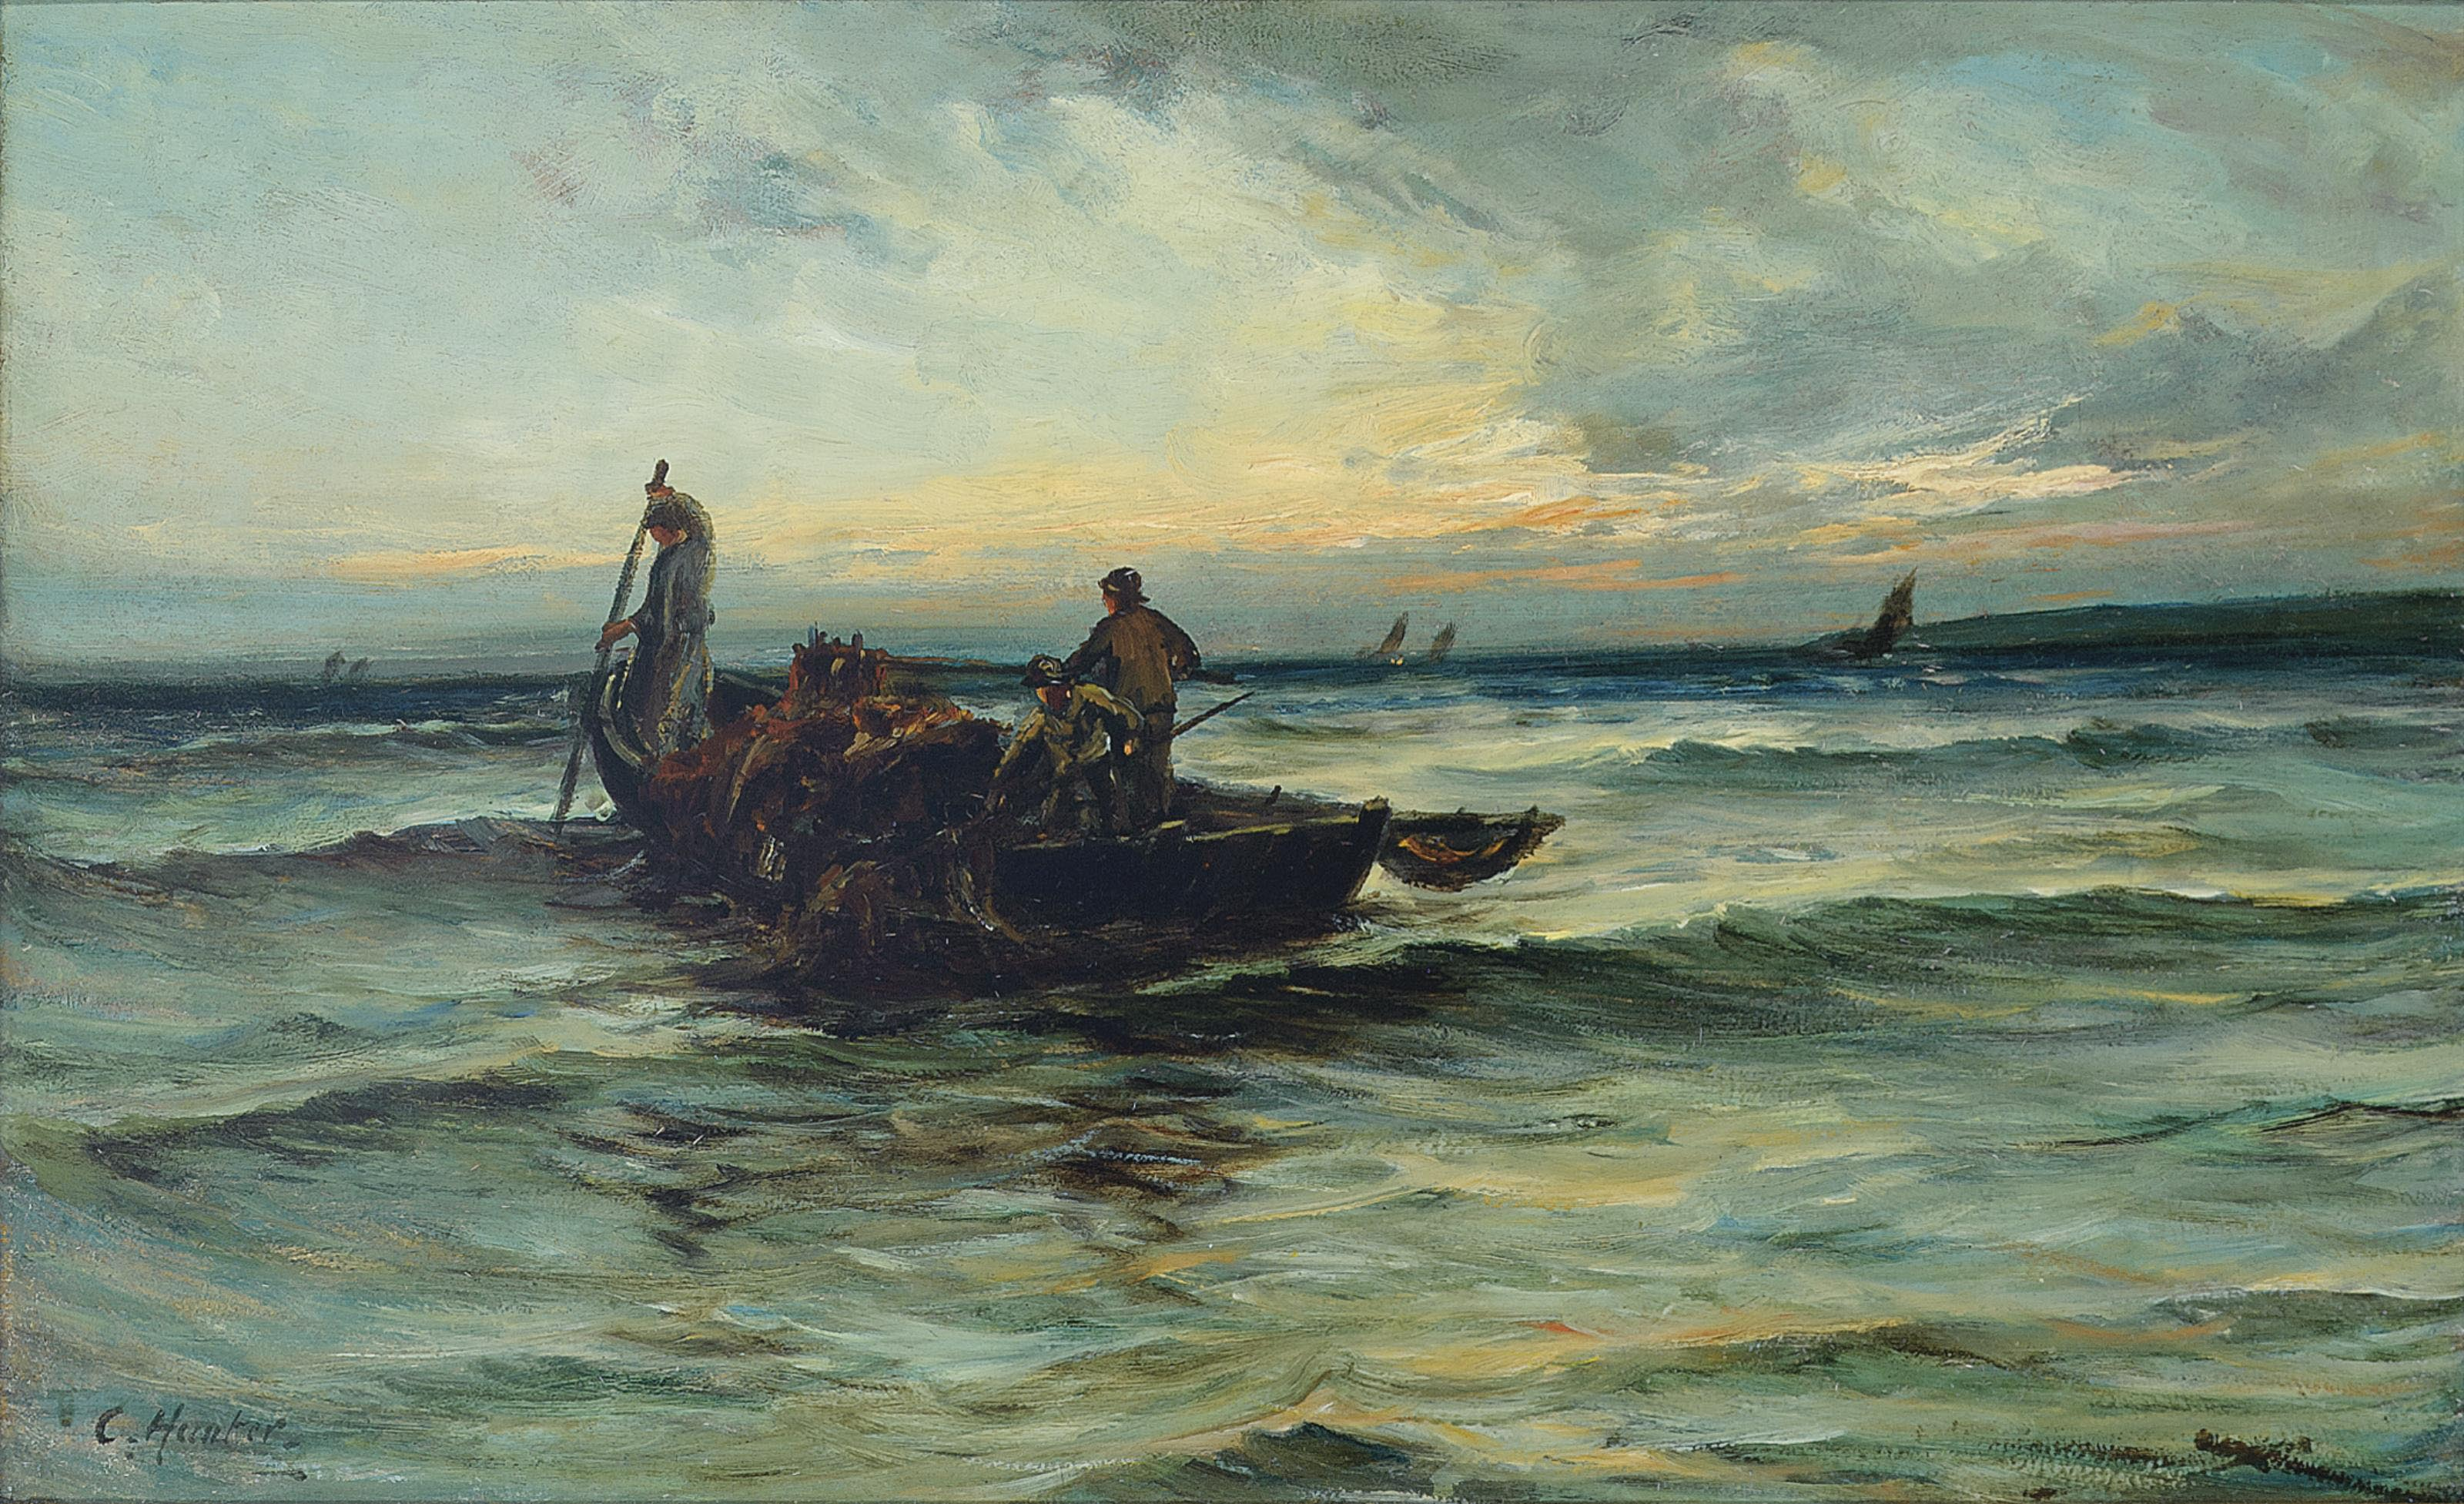 Hauling in the nets at sunset